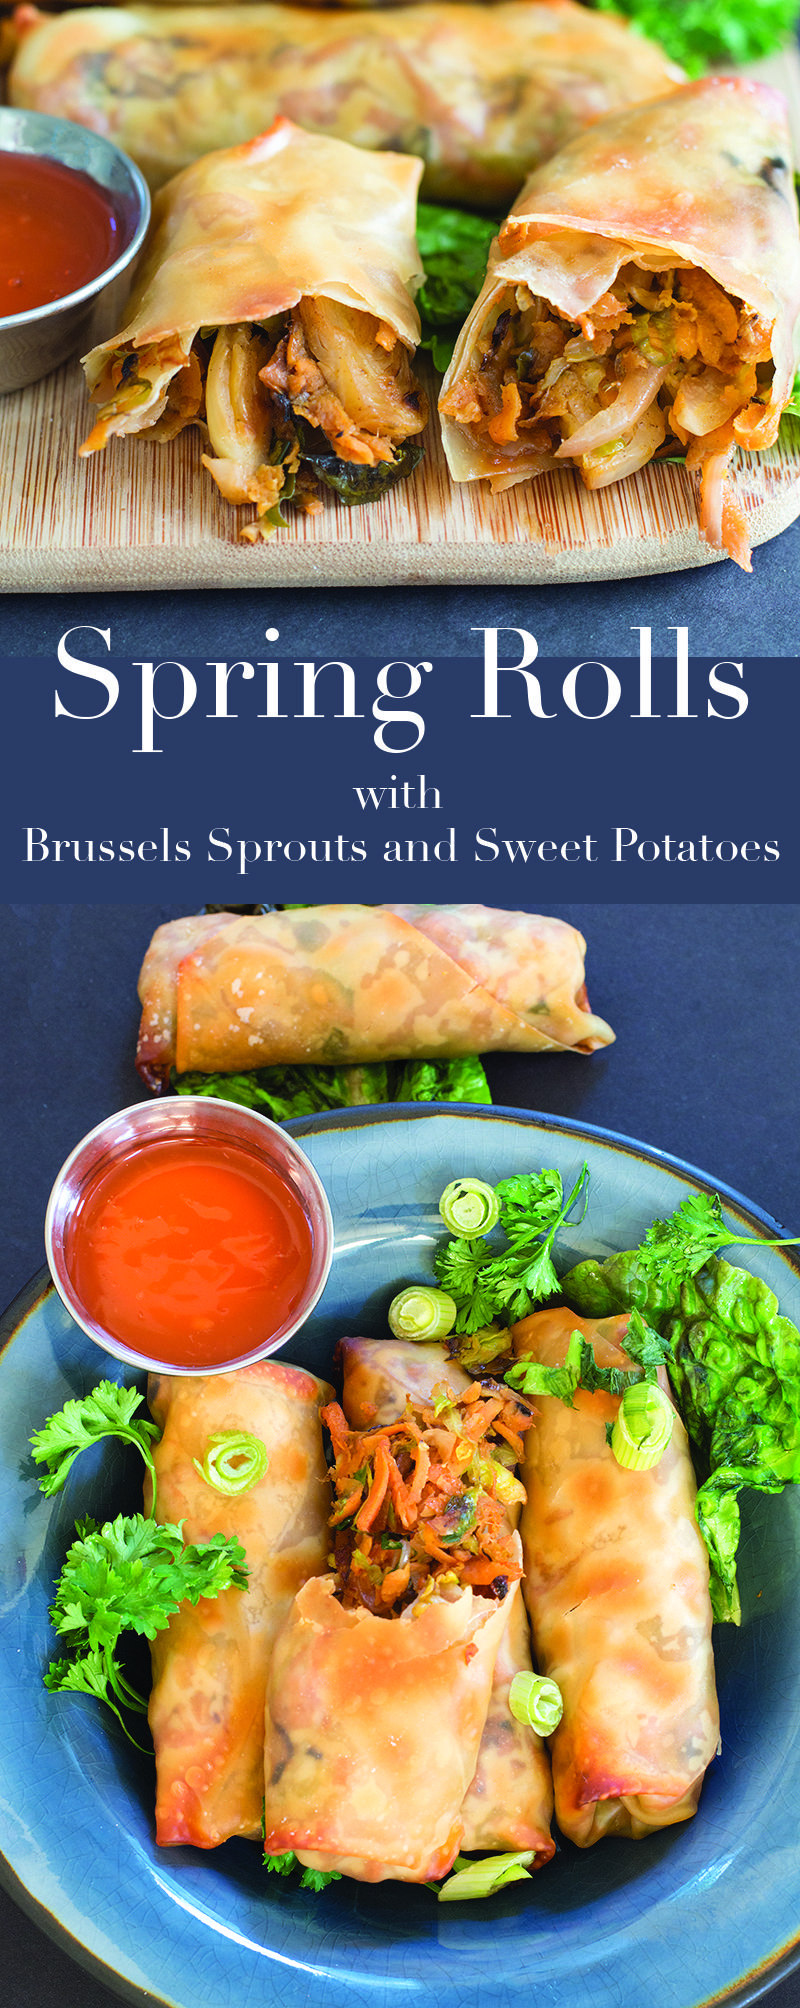 Spring Rolls With Brussels Sprouts